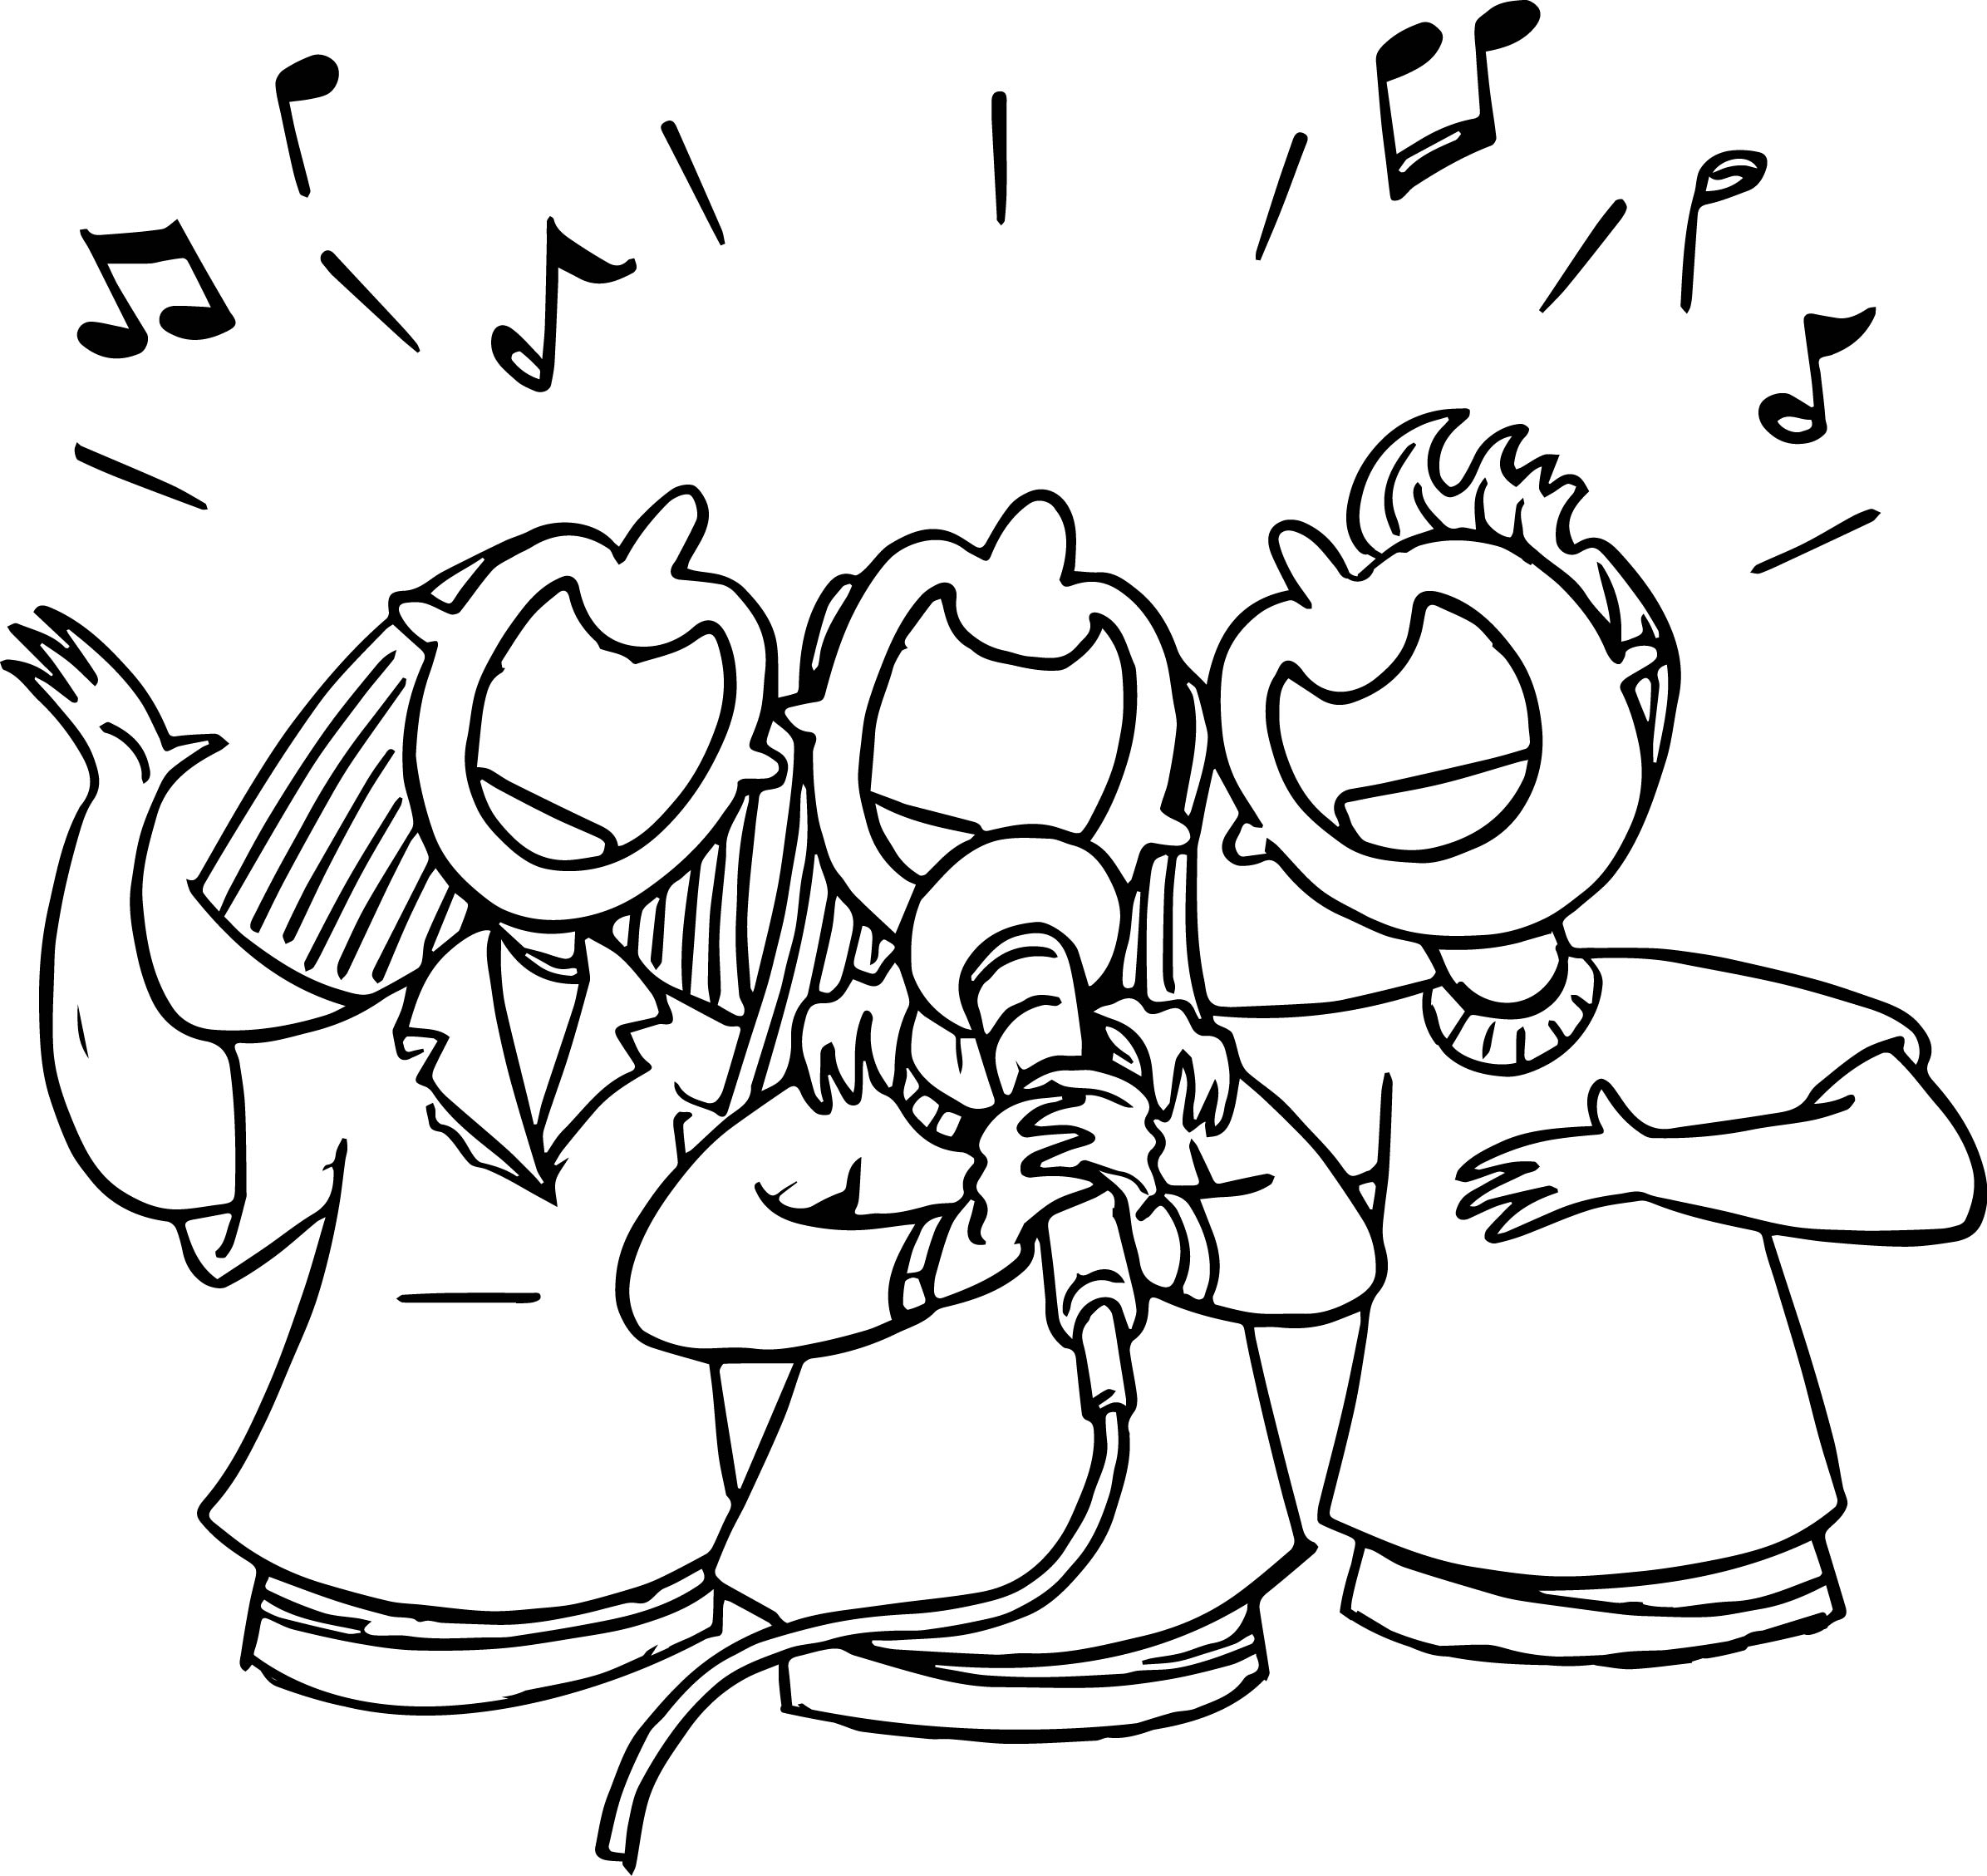 coloring pages of singing - photo#4